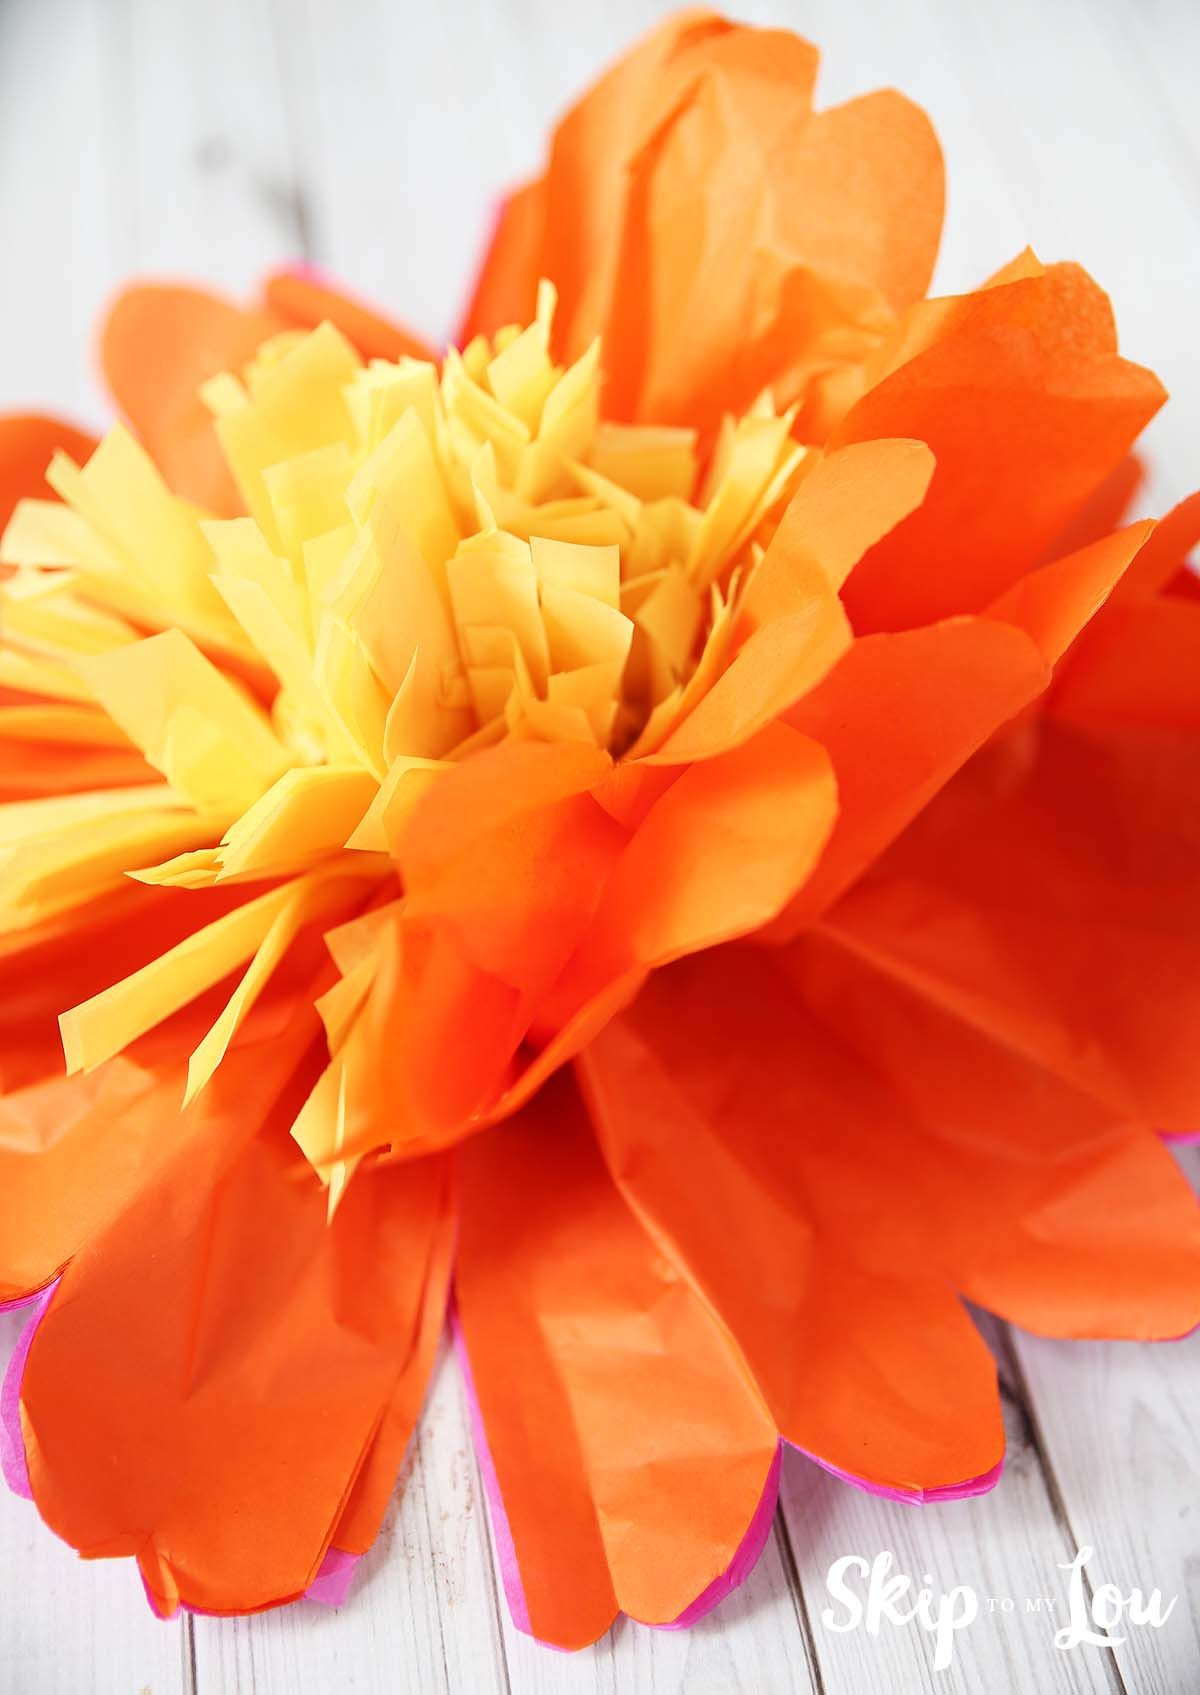 How to make tissue paper flowers skip to my lou skip to my lou how to make tissue paper flowers skip to my lou skip to my lou mightylinksfo